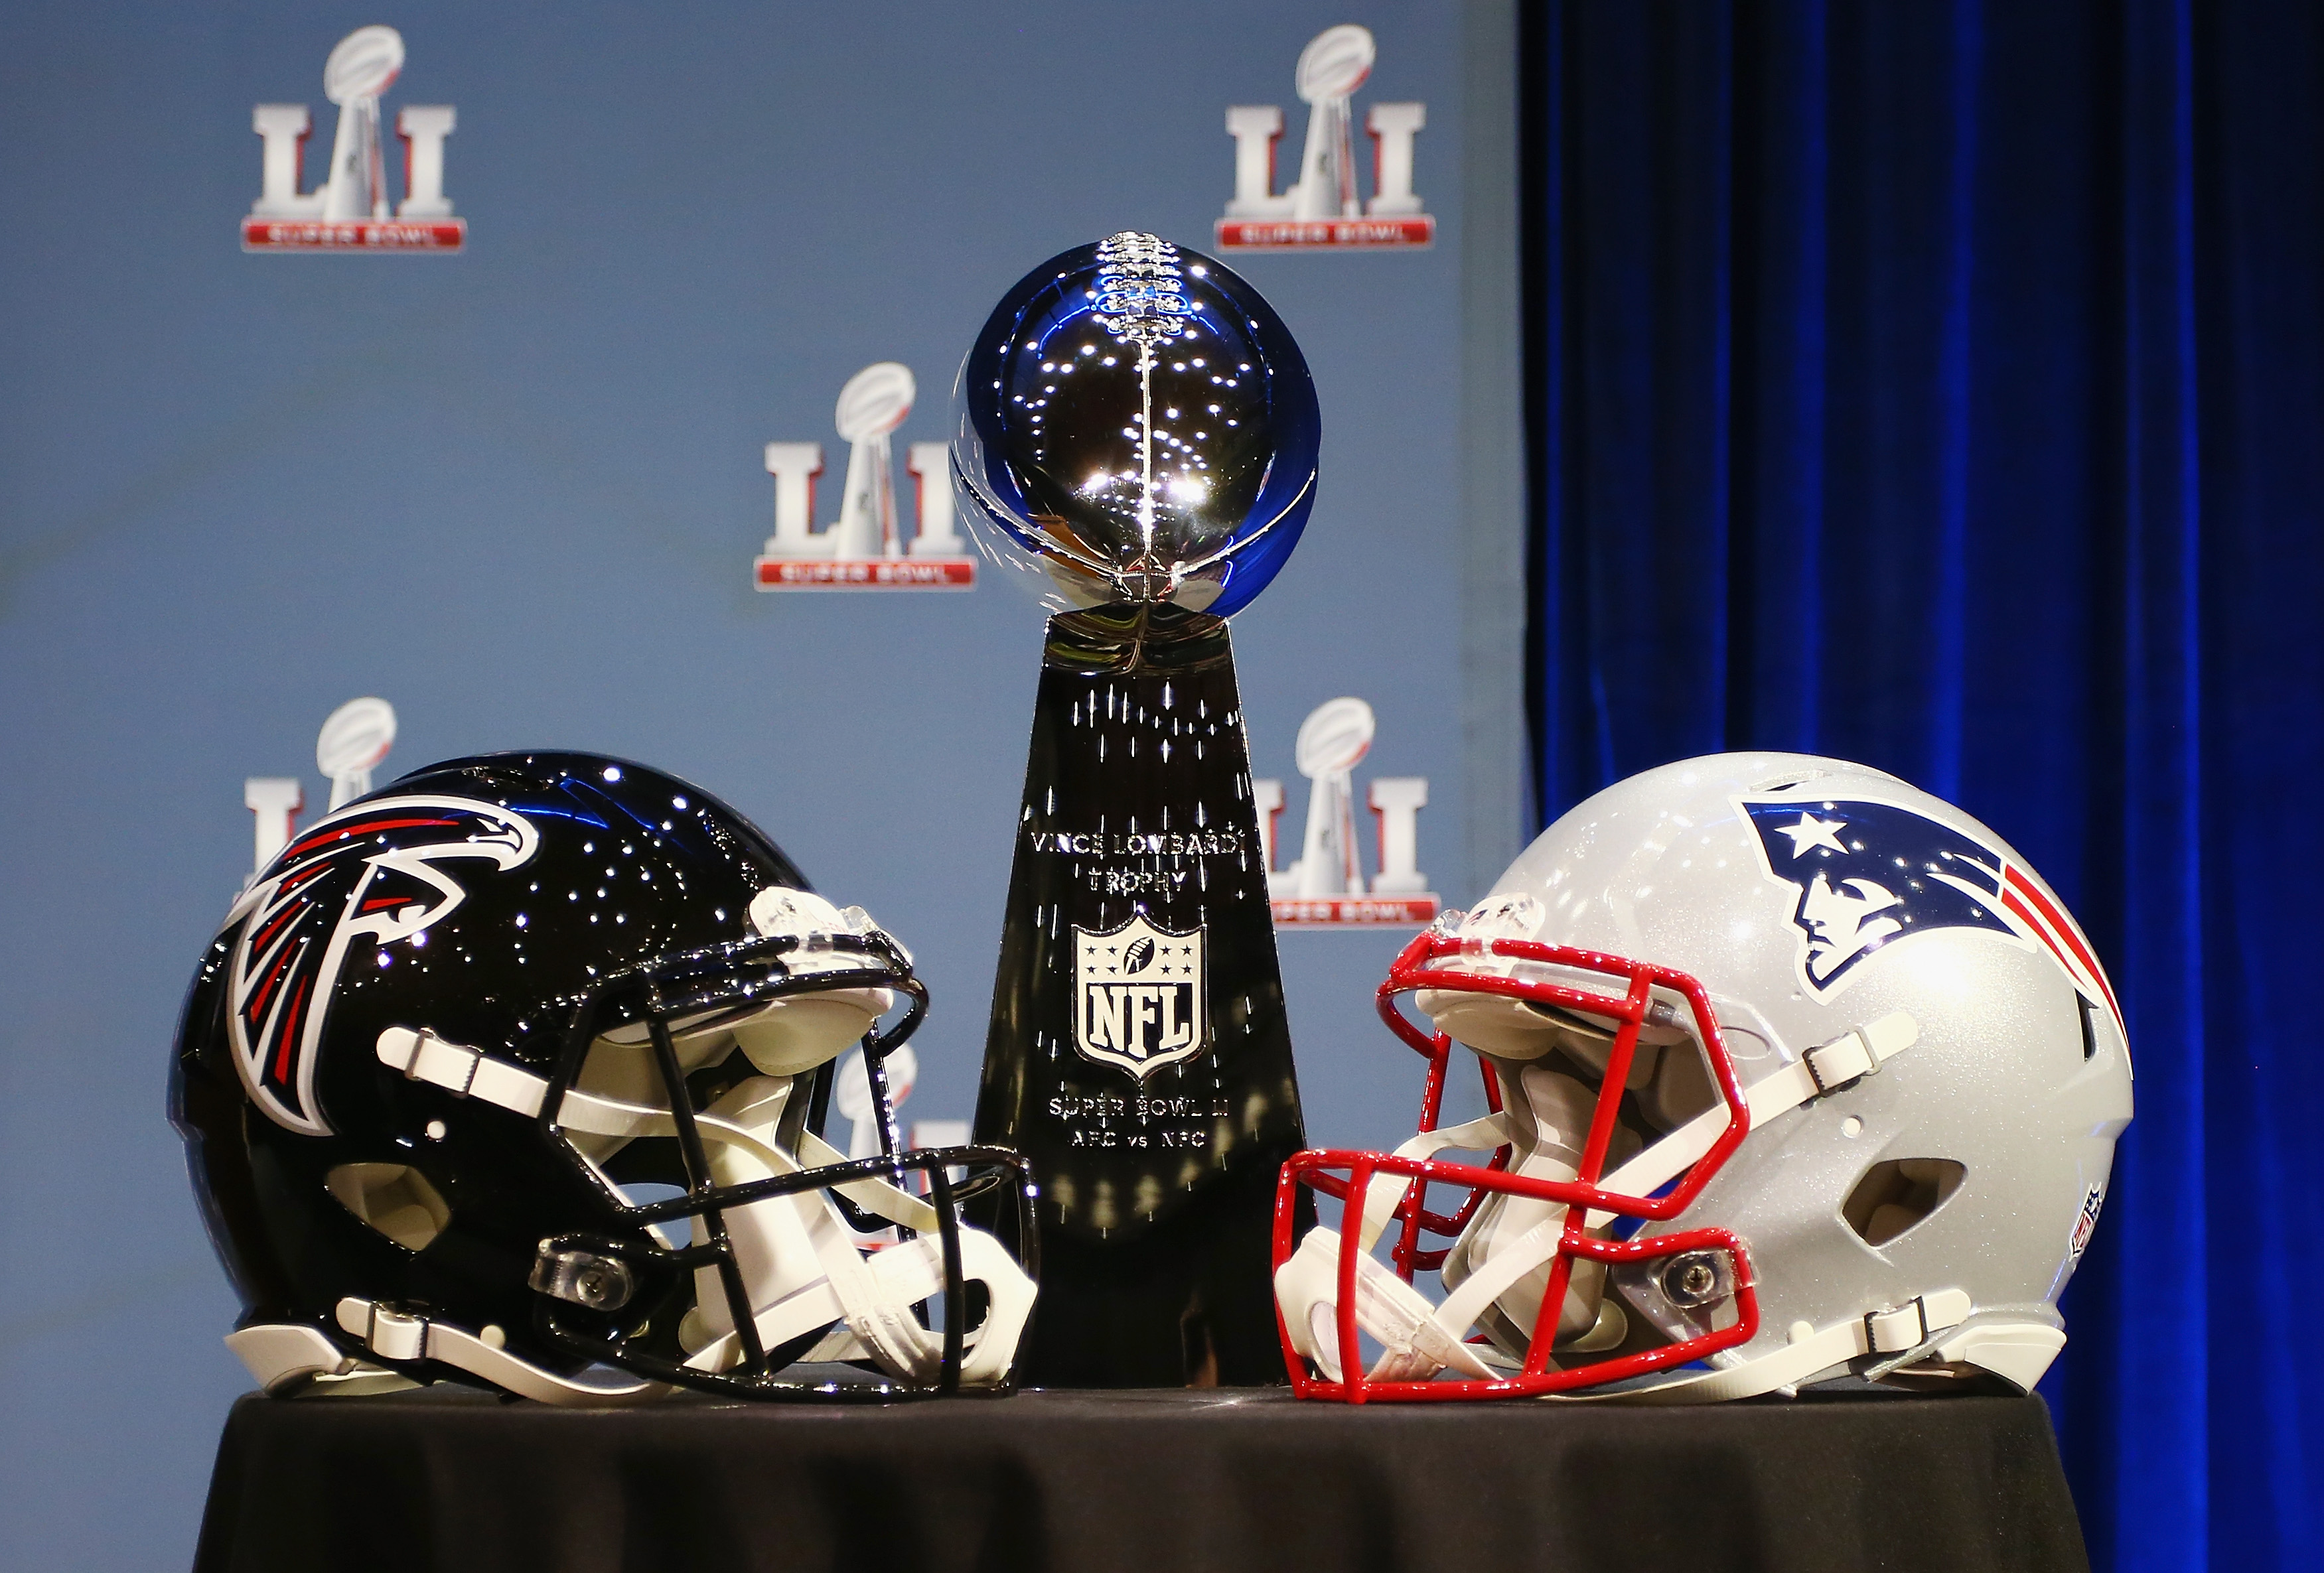 The Vince Lombardi Trophy will go to the winner of Super Bowl LI between the Falcons and Patriots. (Photo by Tim Bradbury/Getty Images)